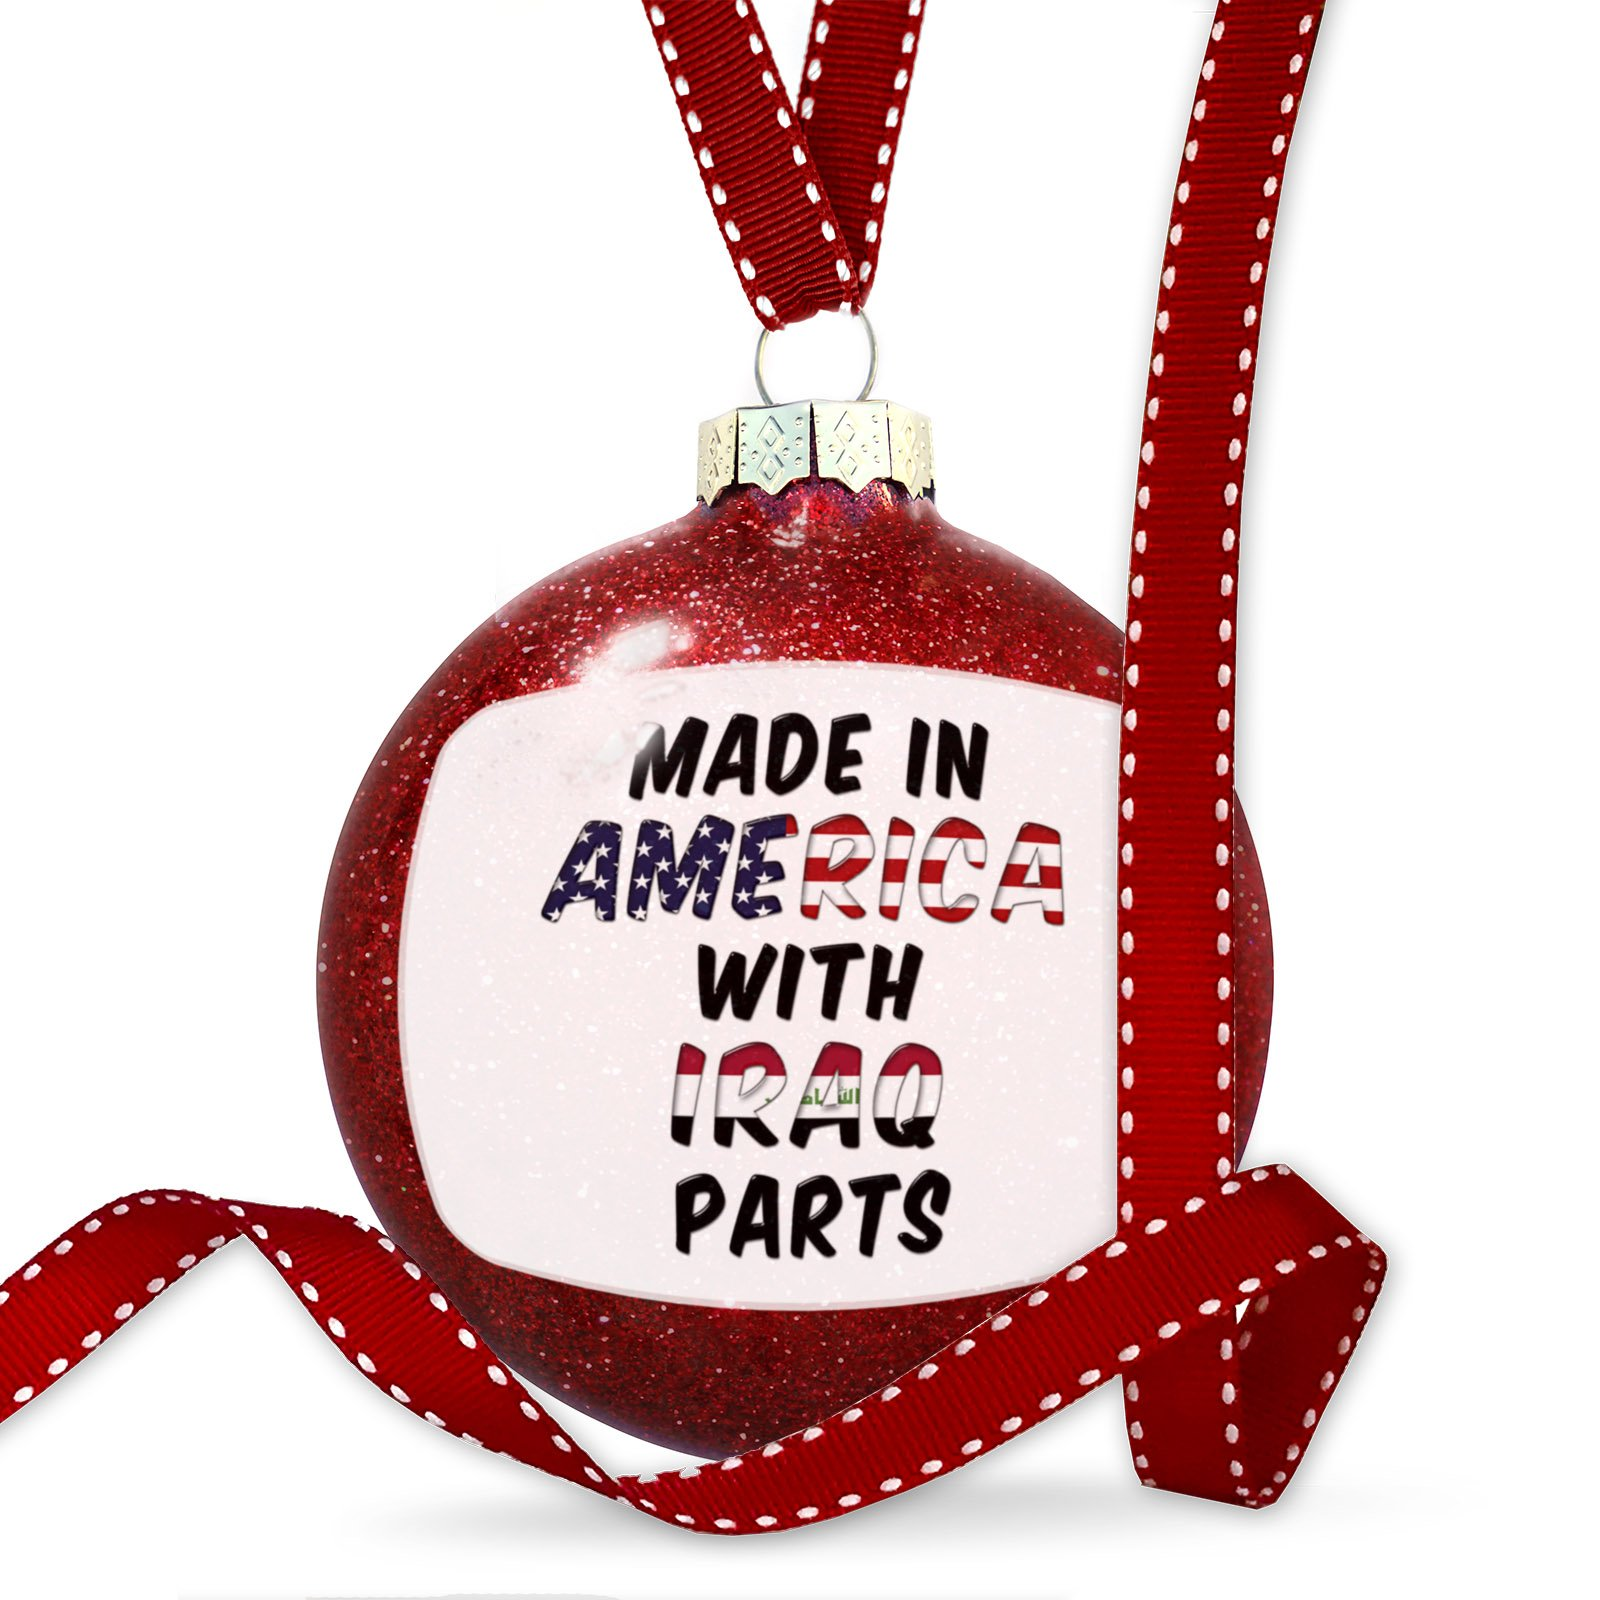 Christmas Decoration Made in America with Parts from Iraq Ornament